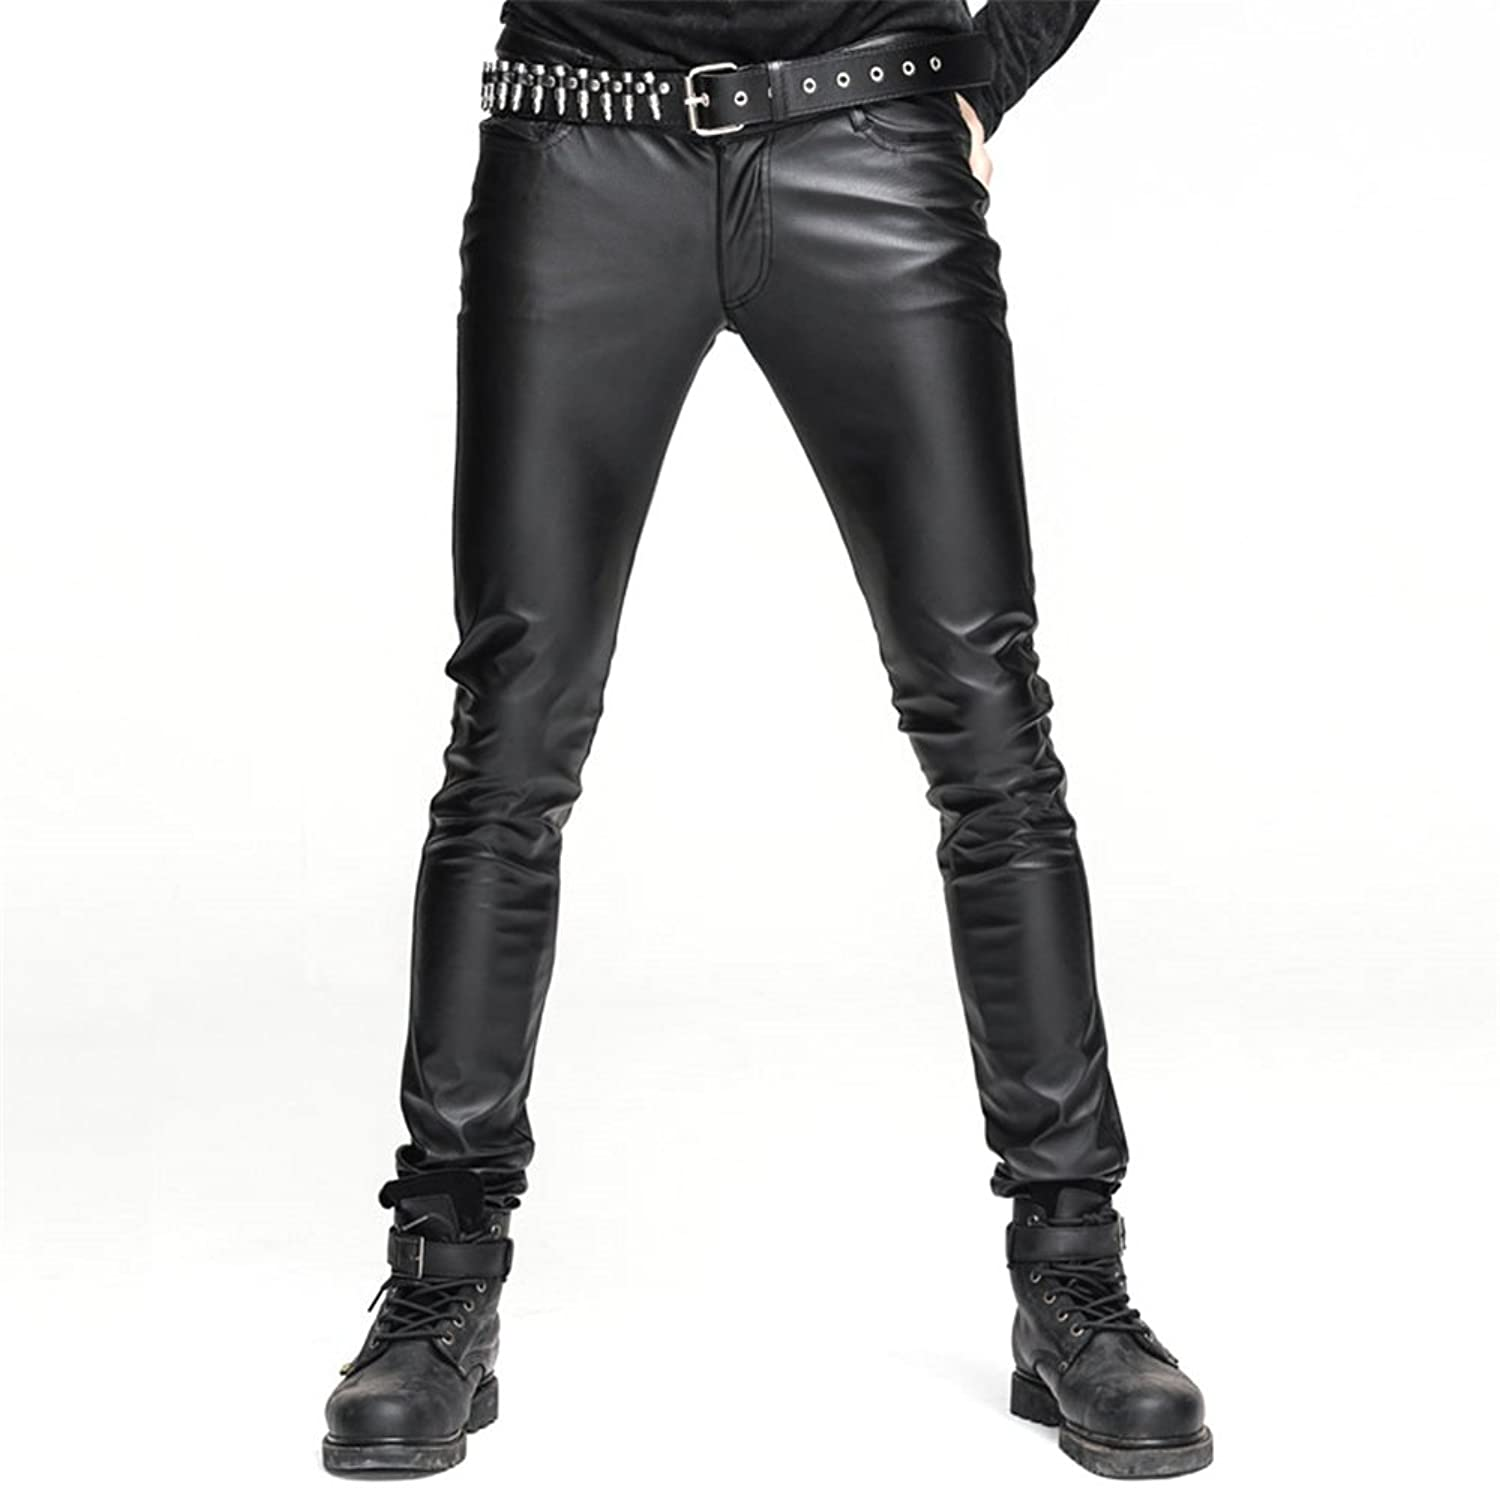 Men's Black Stretch Tight Faux Leather Pants